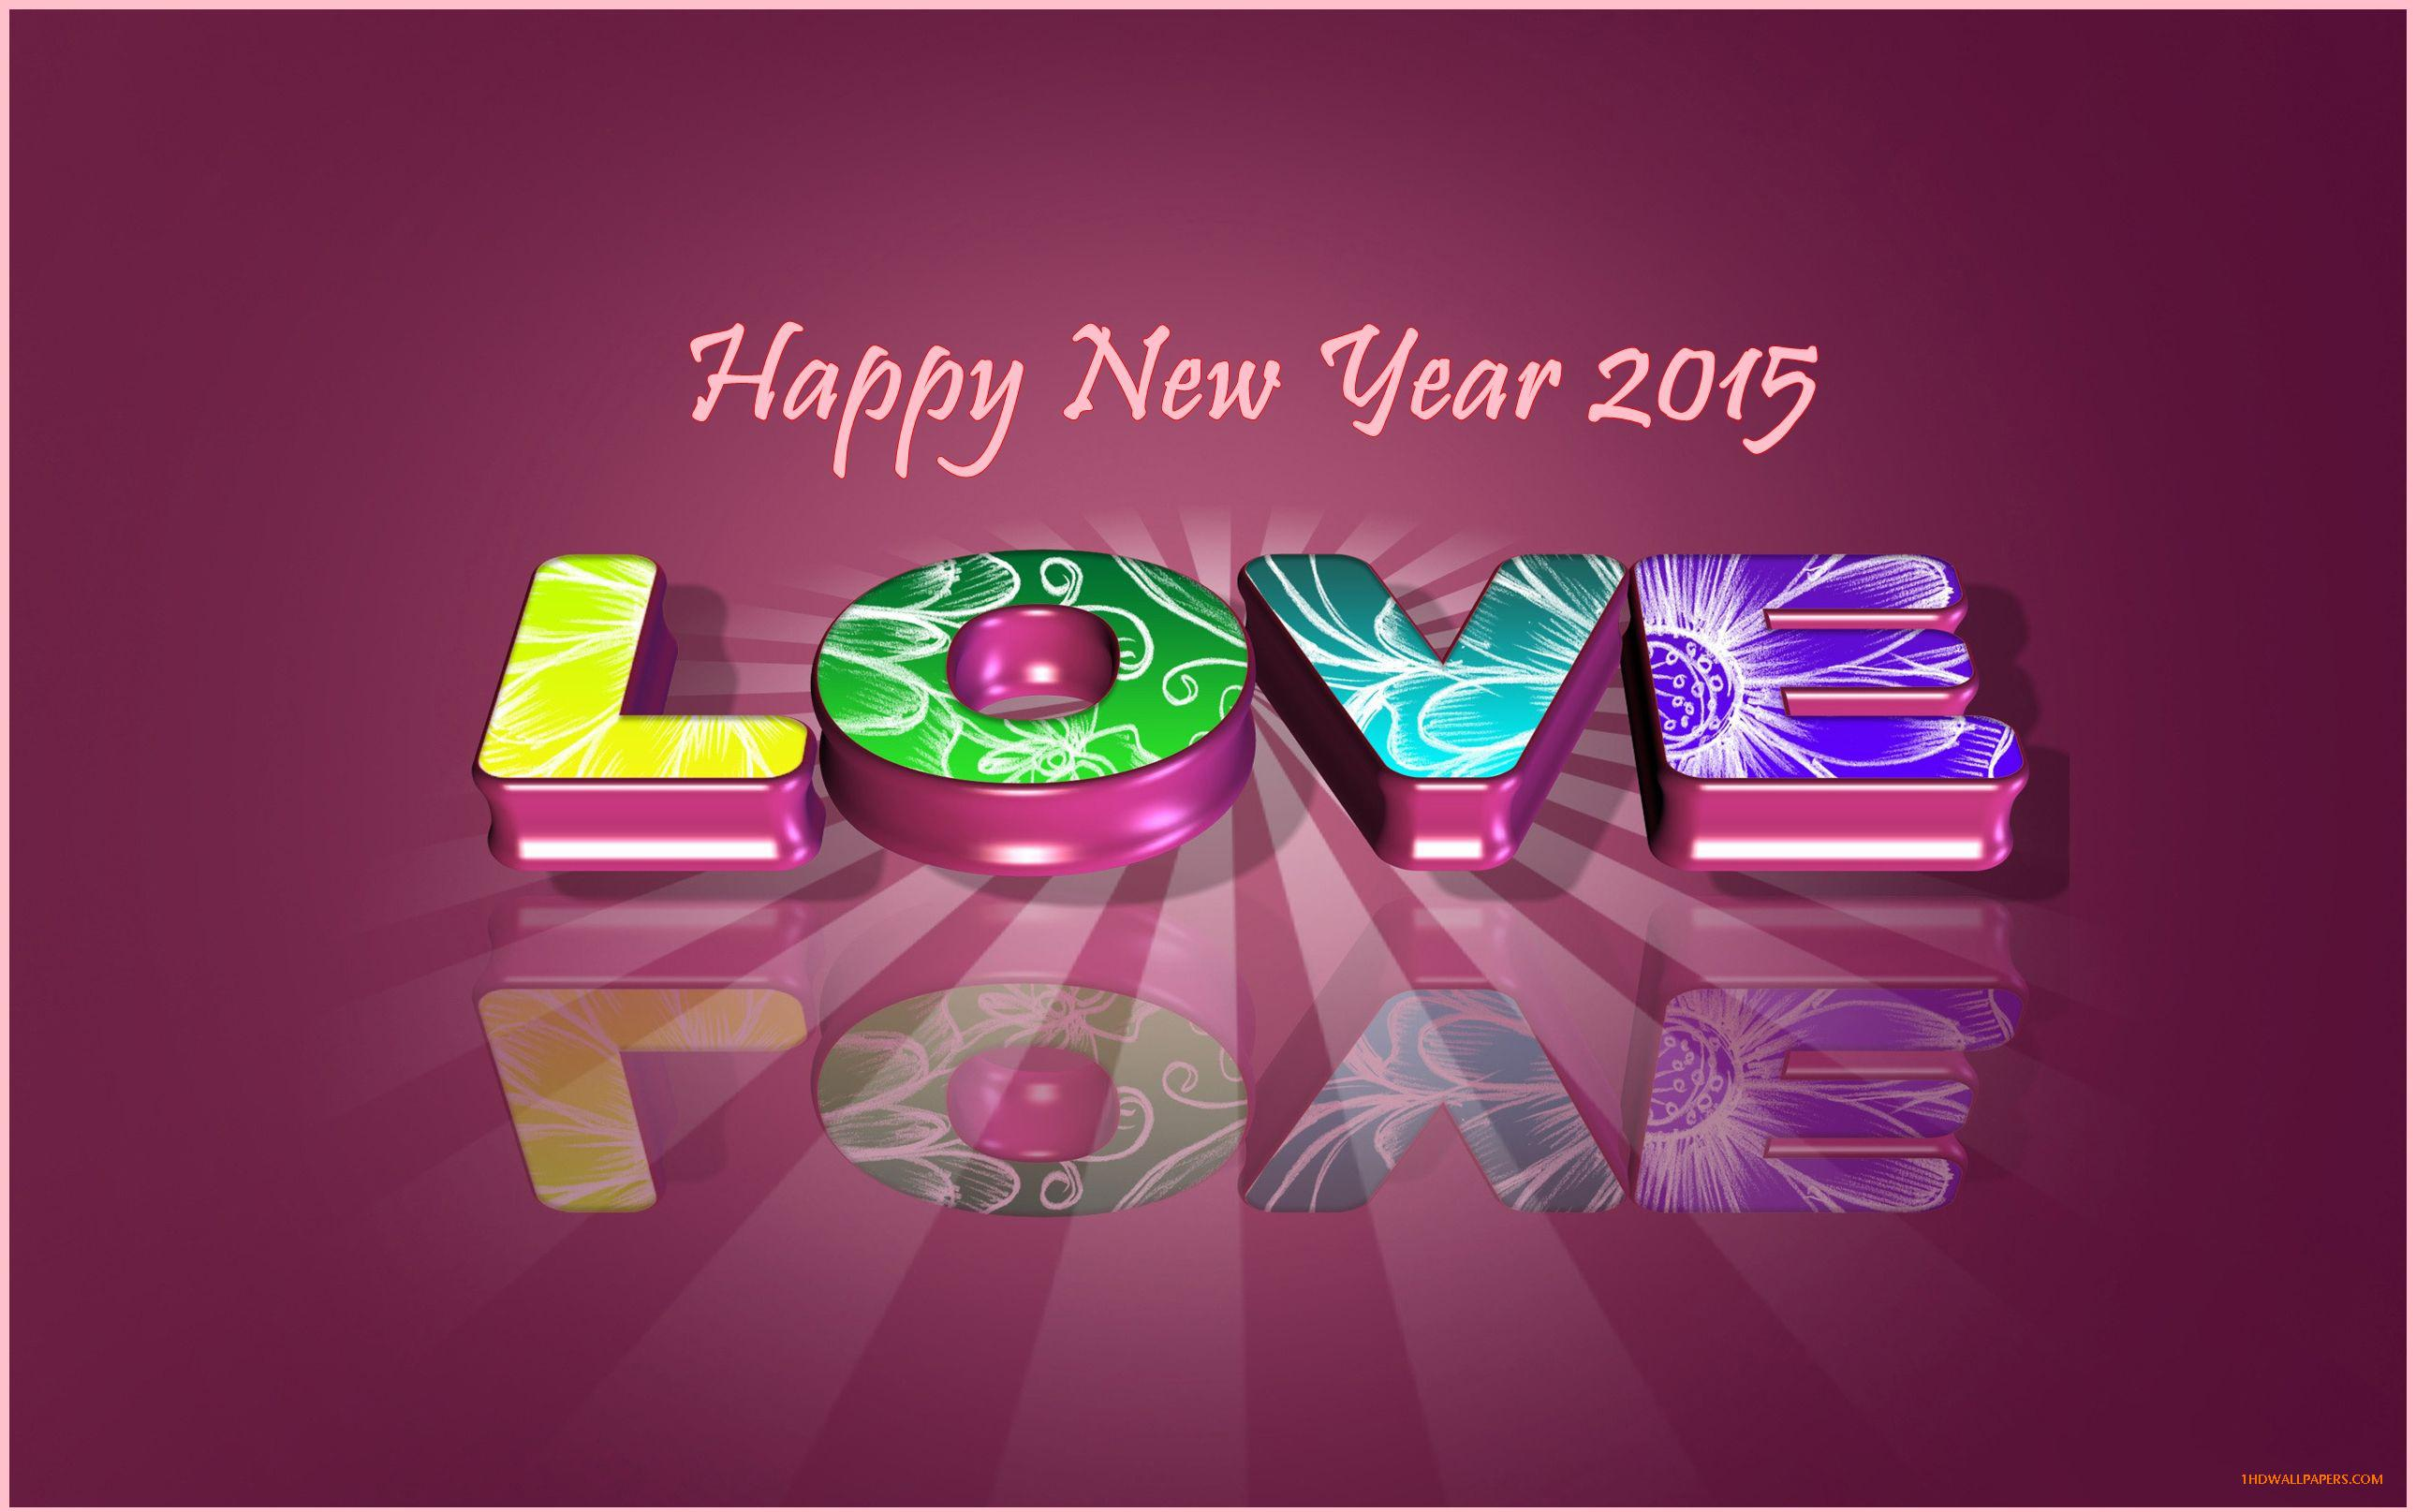 Wallpaper download new year 2015 - Happy New Year 2015 Wallpapers Hd Large Size Wallpapers Ddc Fun